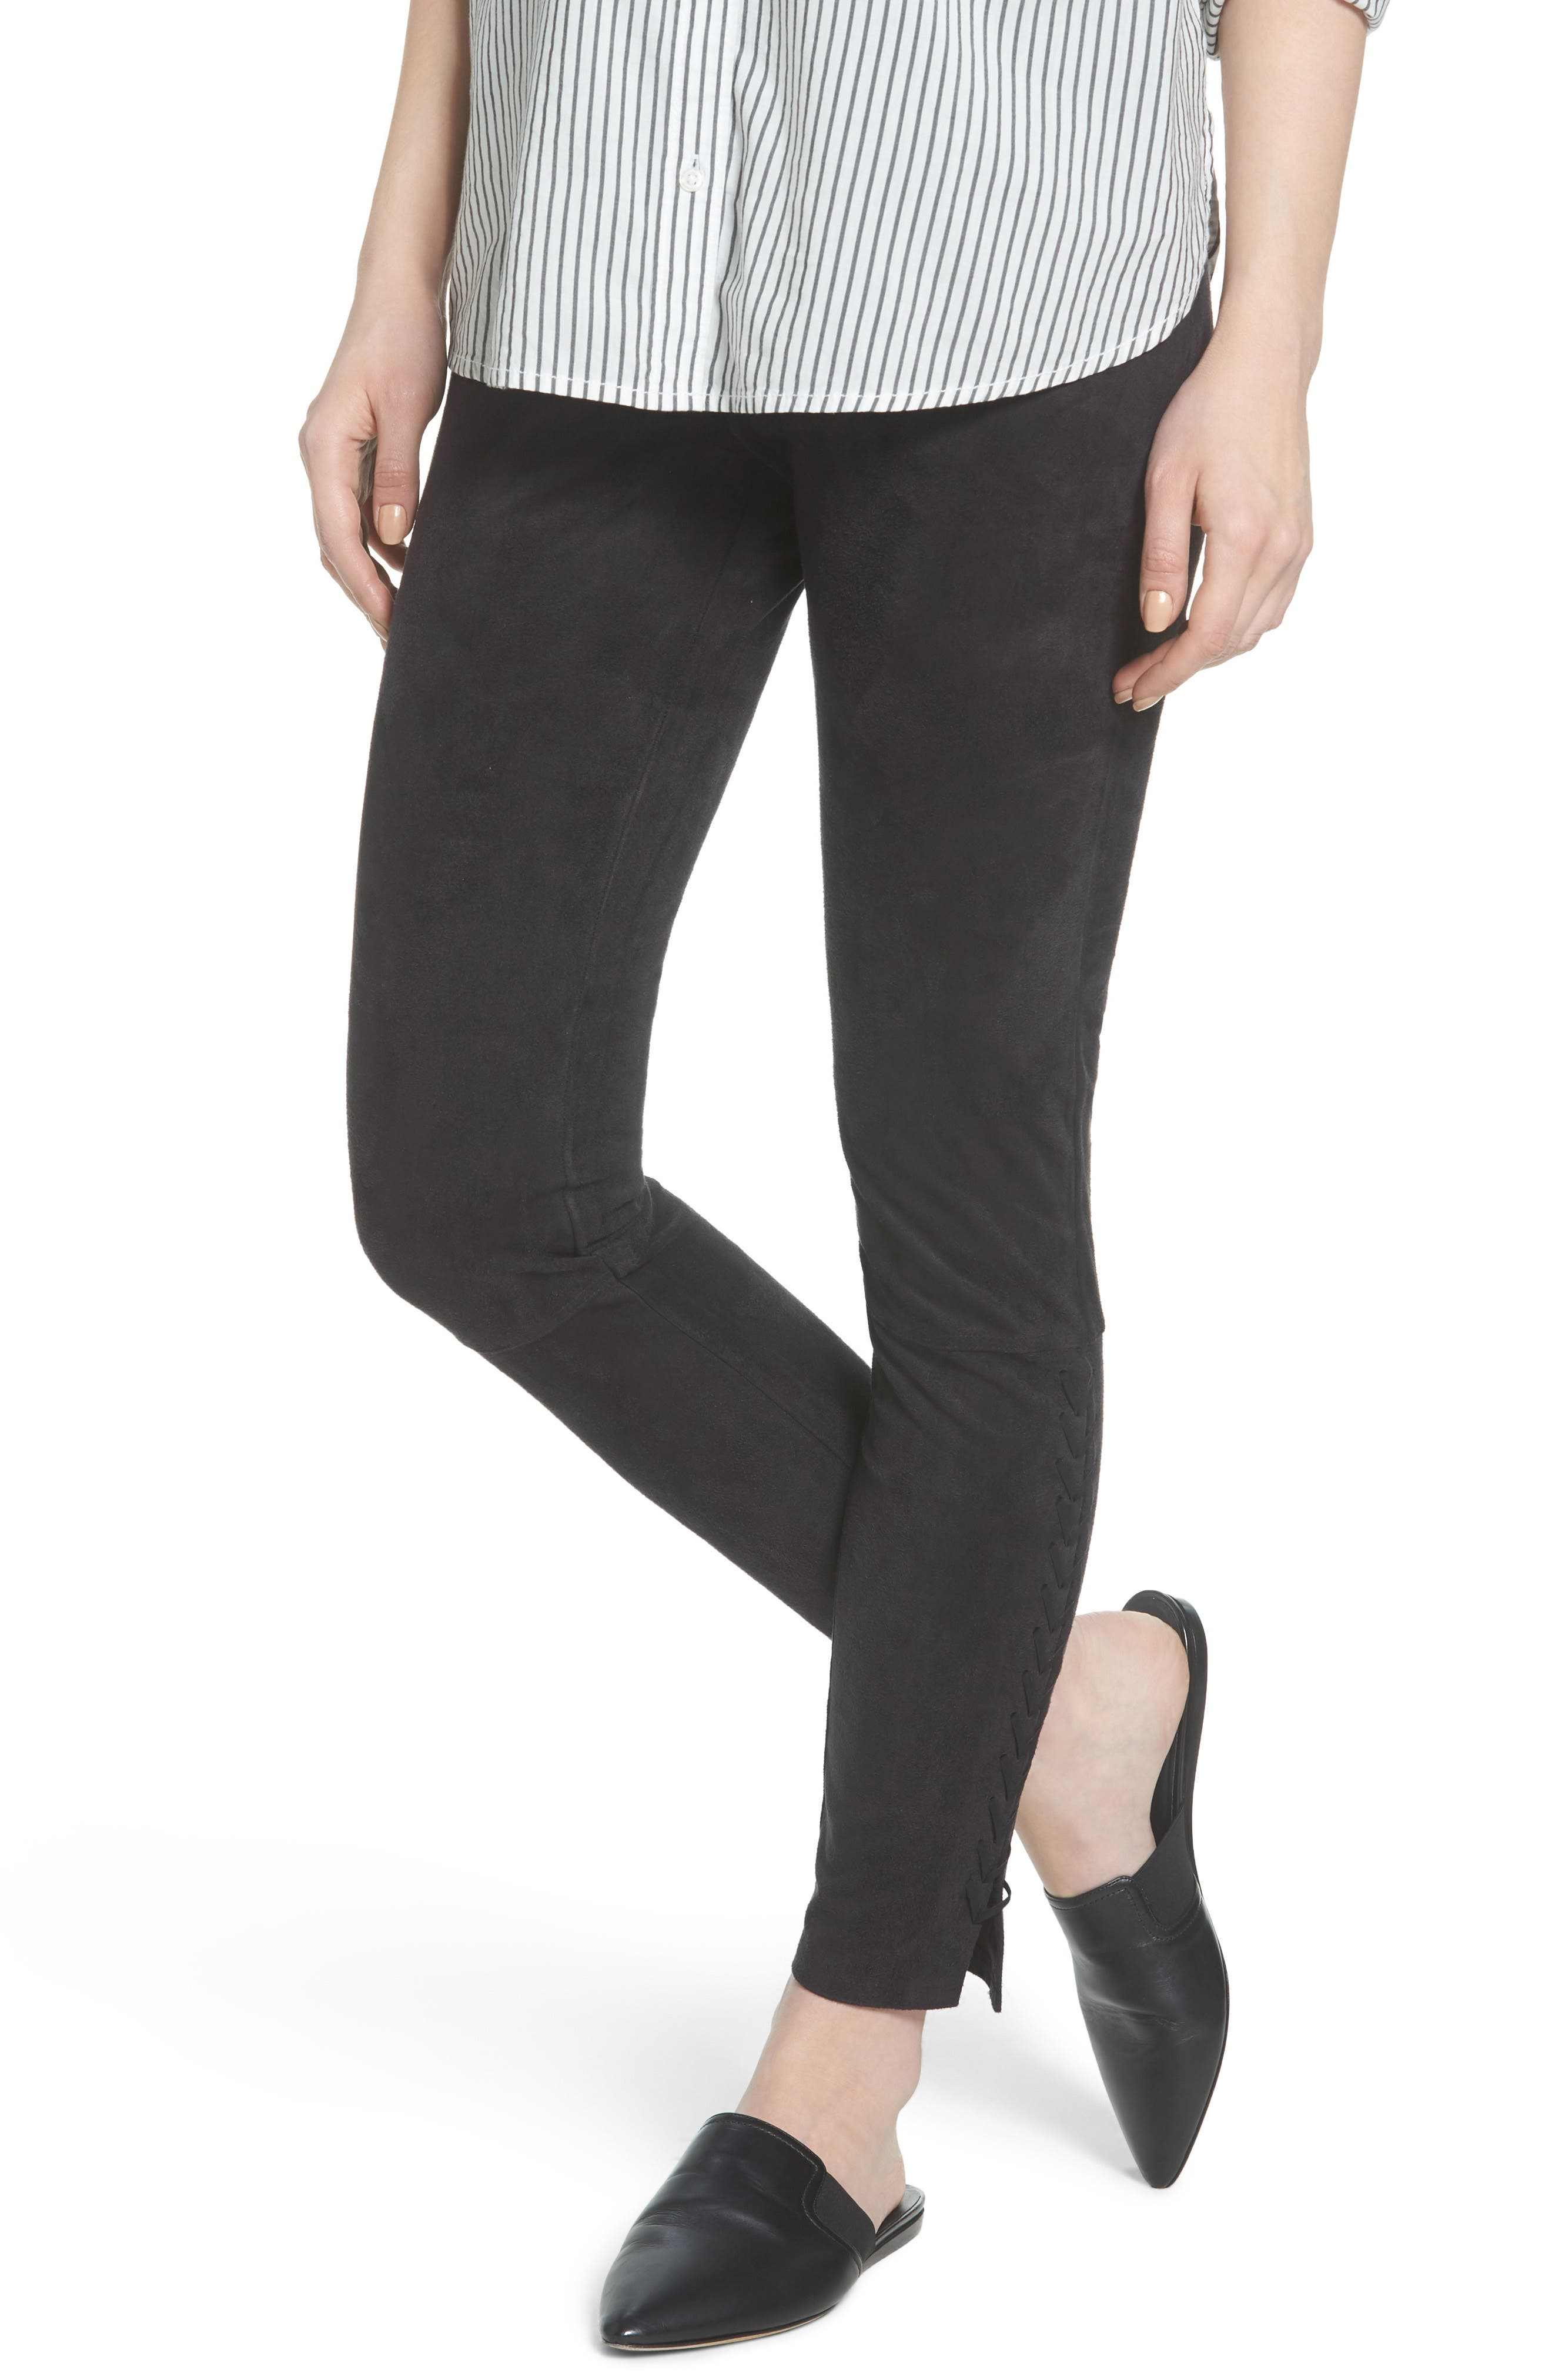 Mission Leggings,                             Main thumbnail 1, color,                             001